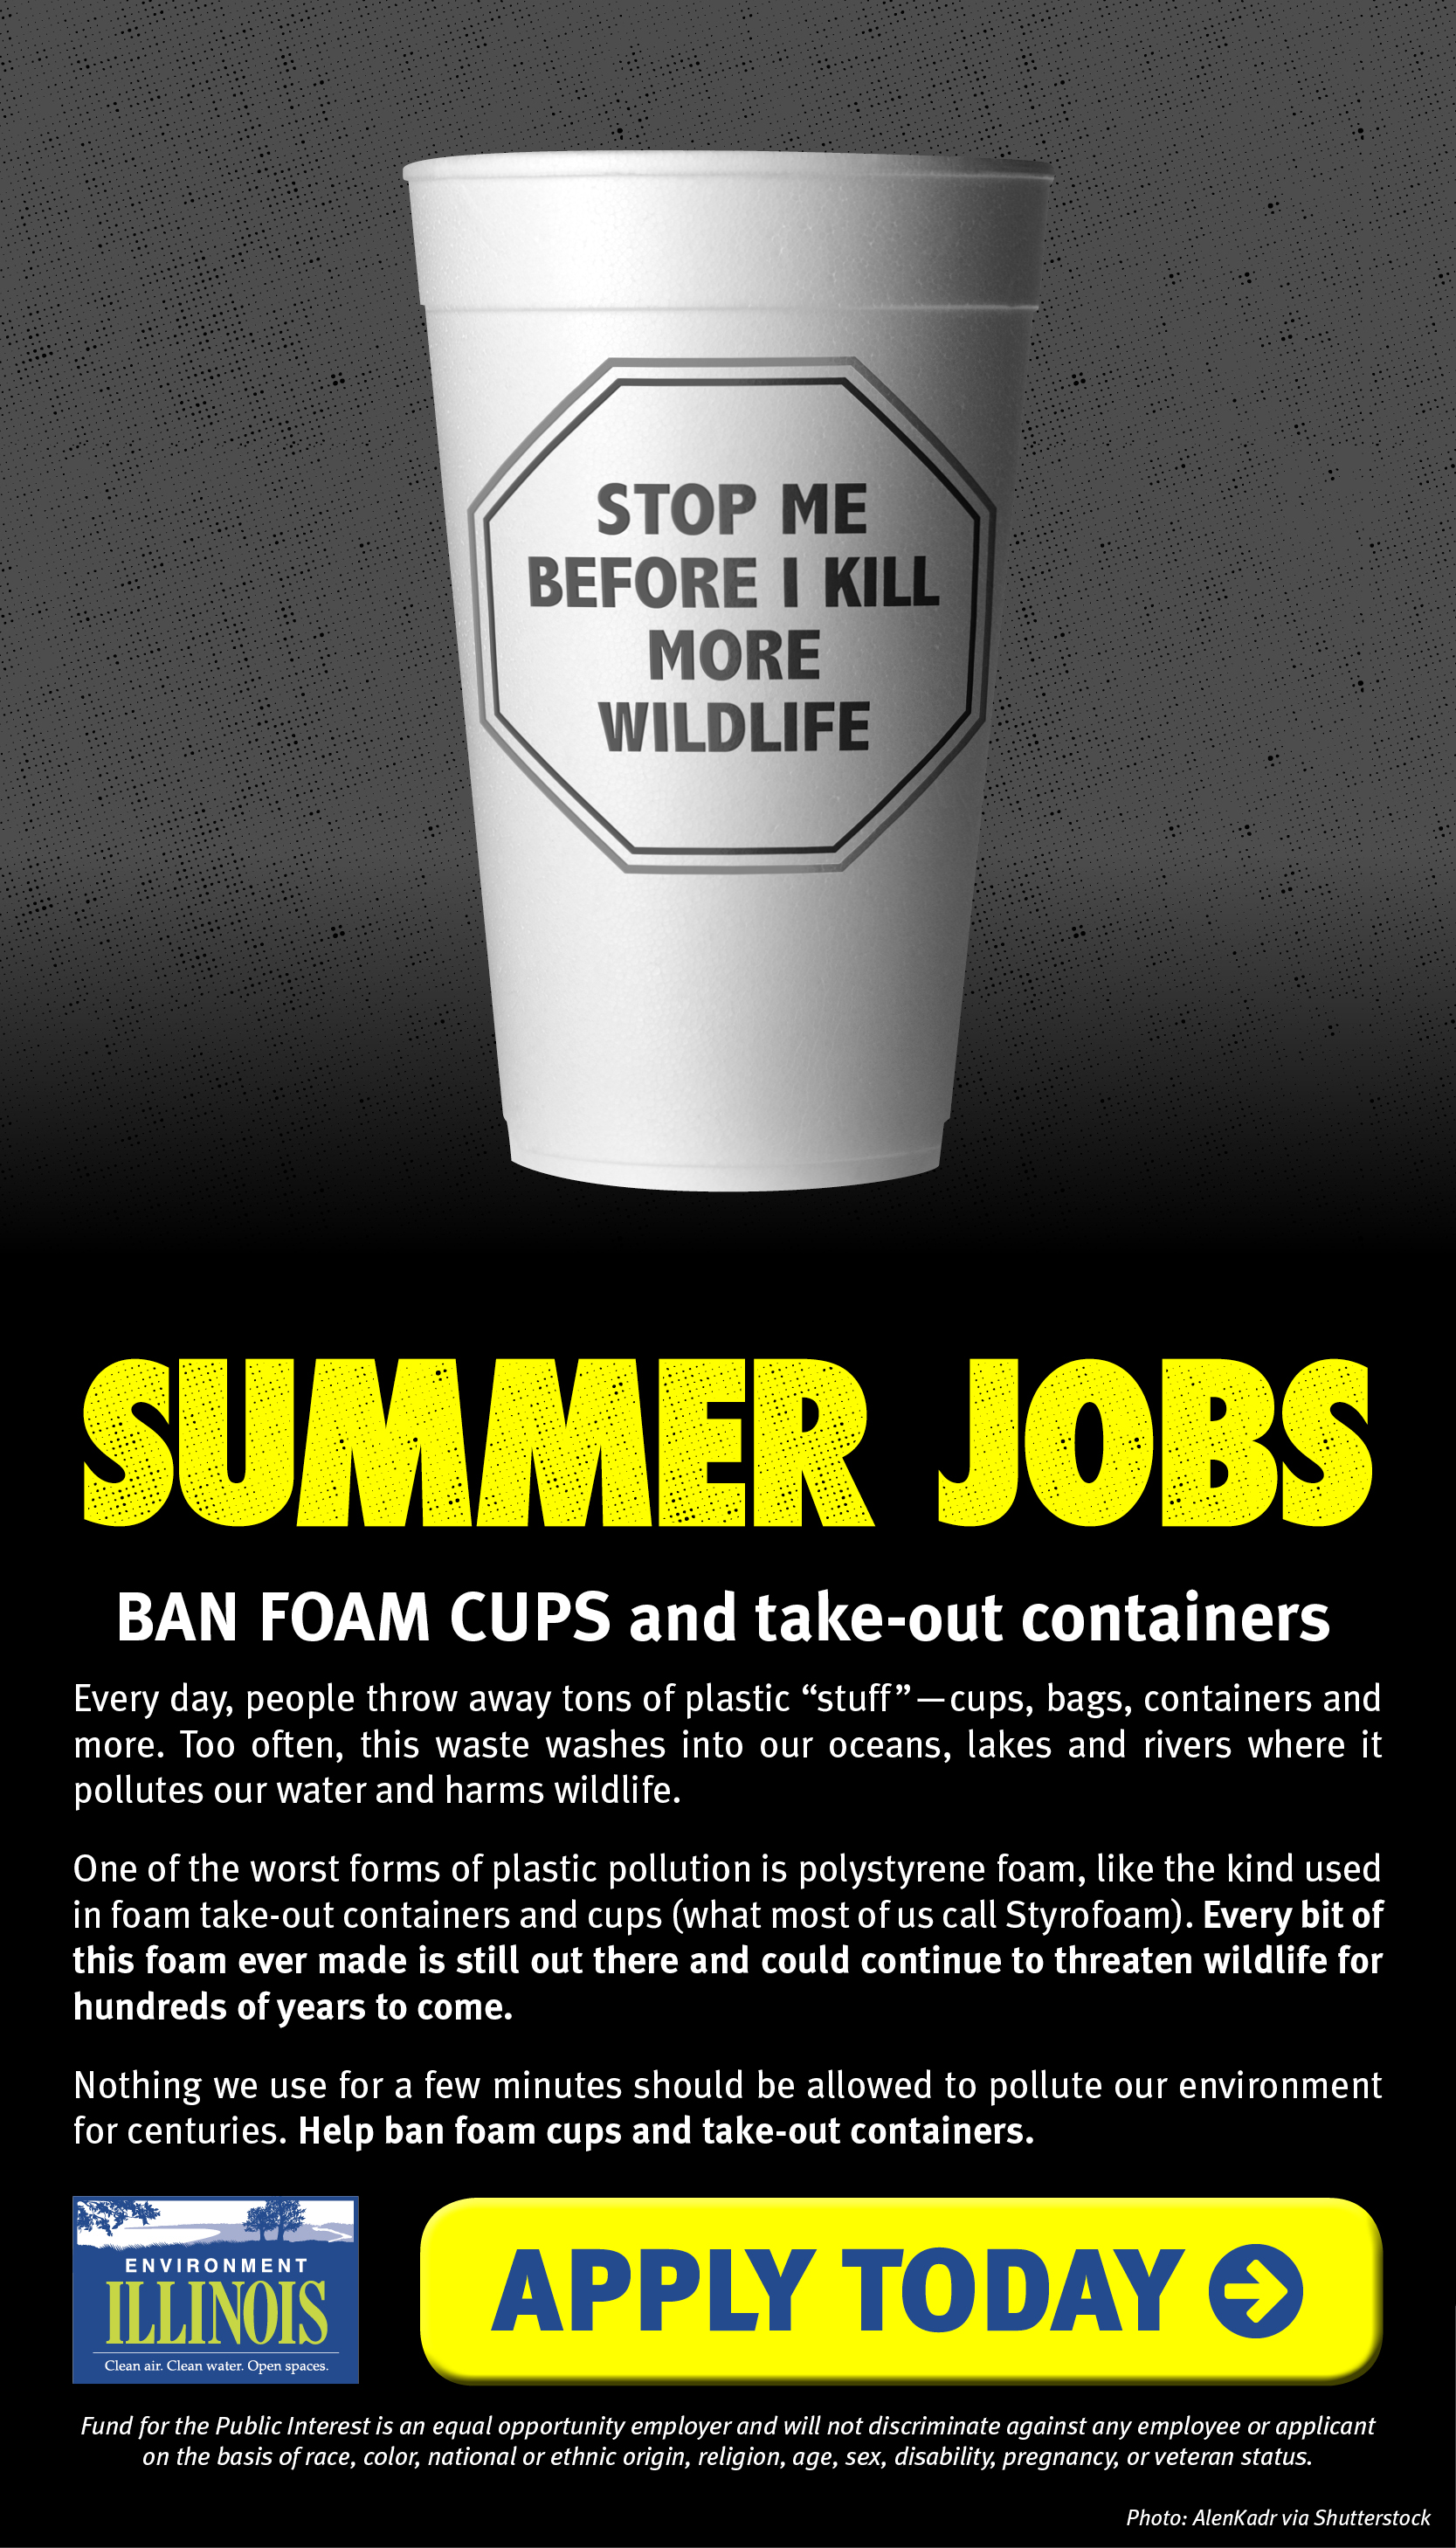 Summer Jobs: Ban foam cups and takeout containers